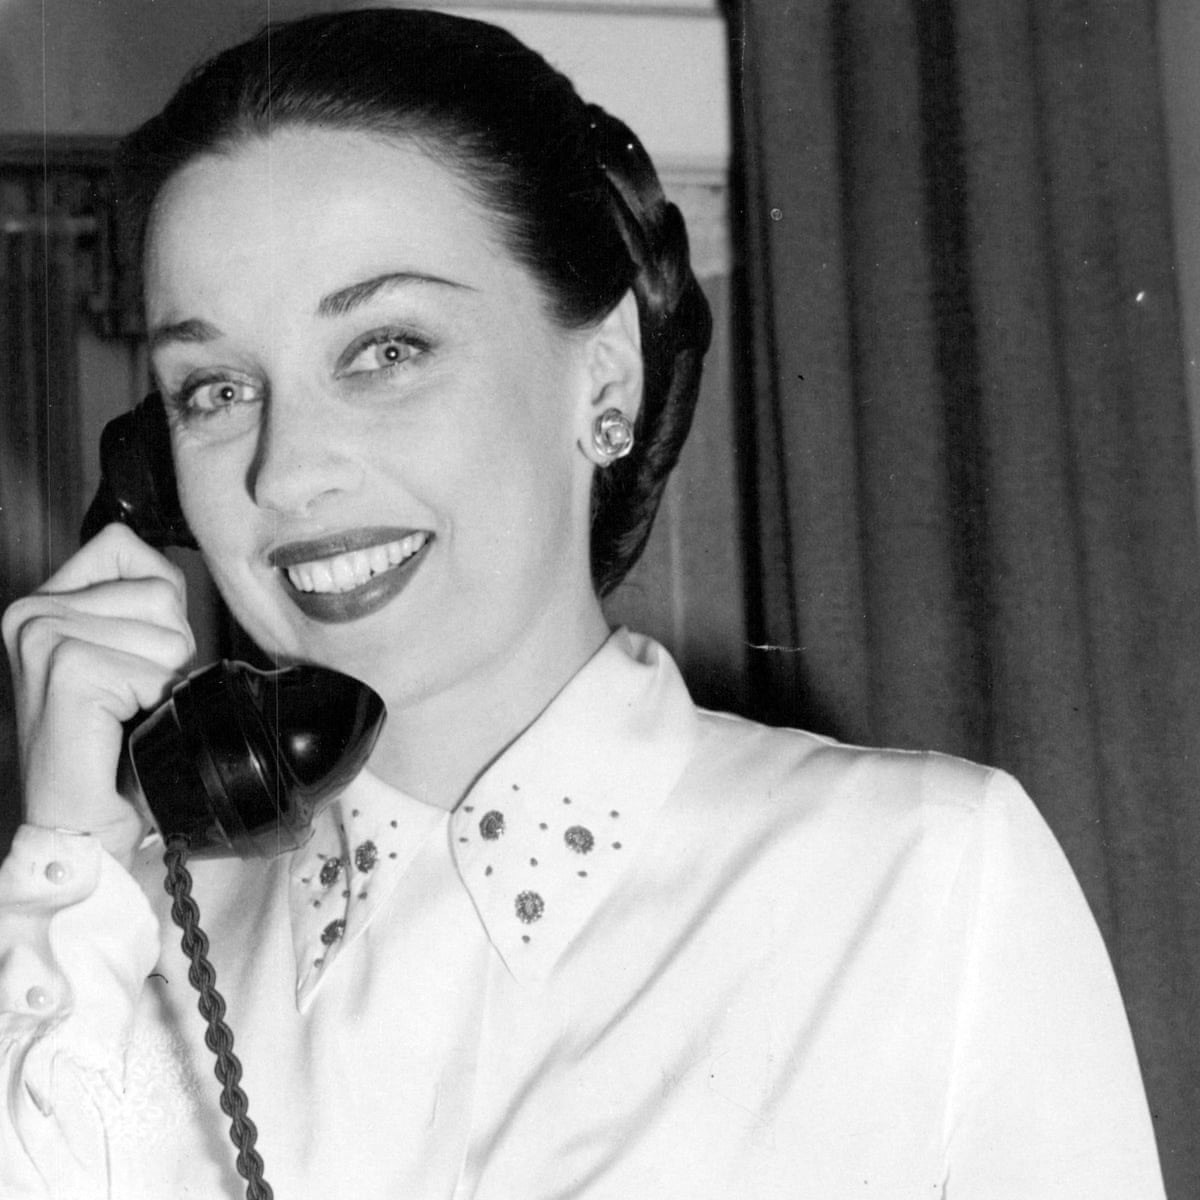 Patricia Porno Star patricia morison, star of broadway and hollywood, dies aged